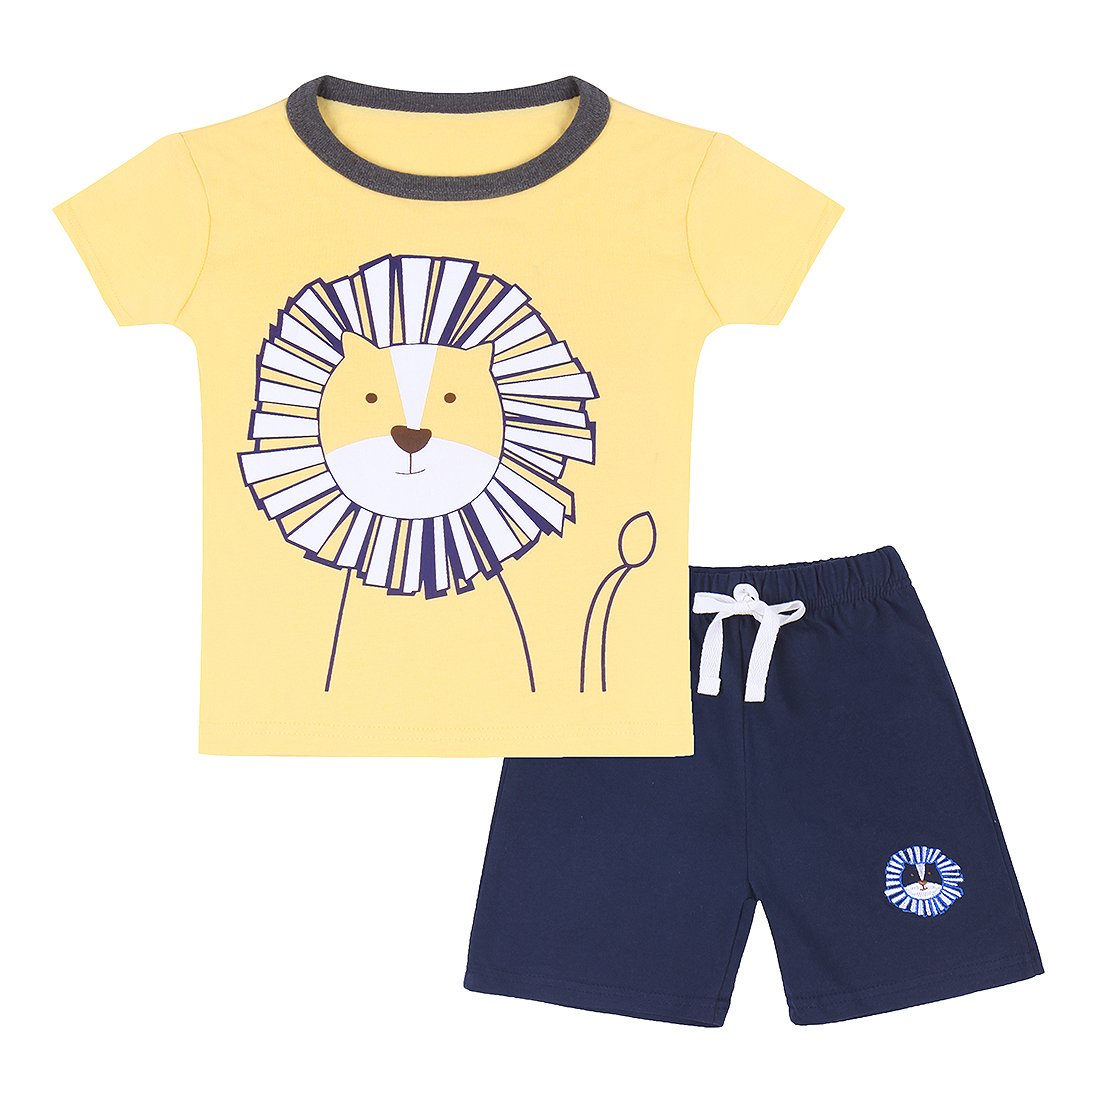 Neeseelily Baby Boy Short Sleeve T-Shirts and Shorts 2pcs Set Clothes (Yellow, 18-24 Months)